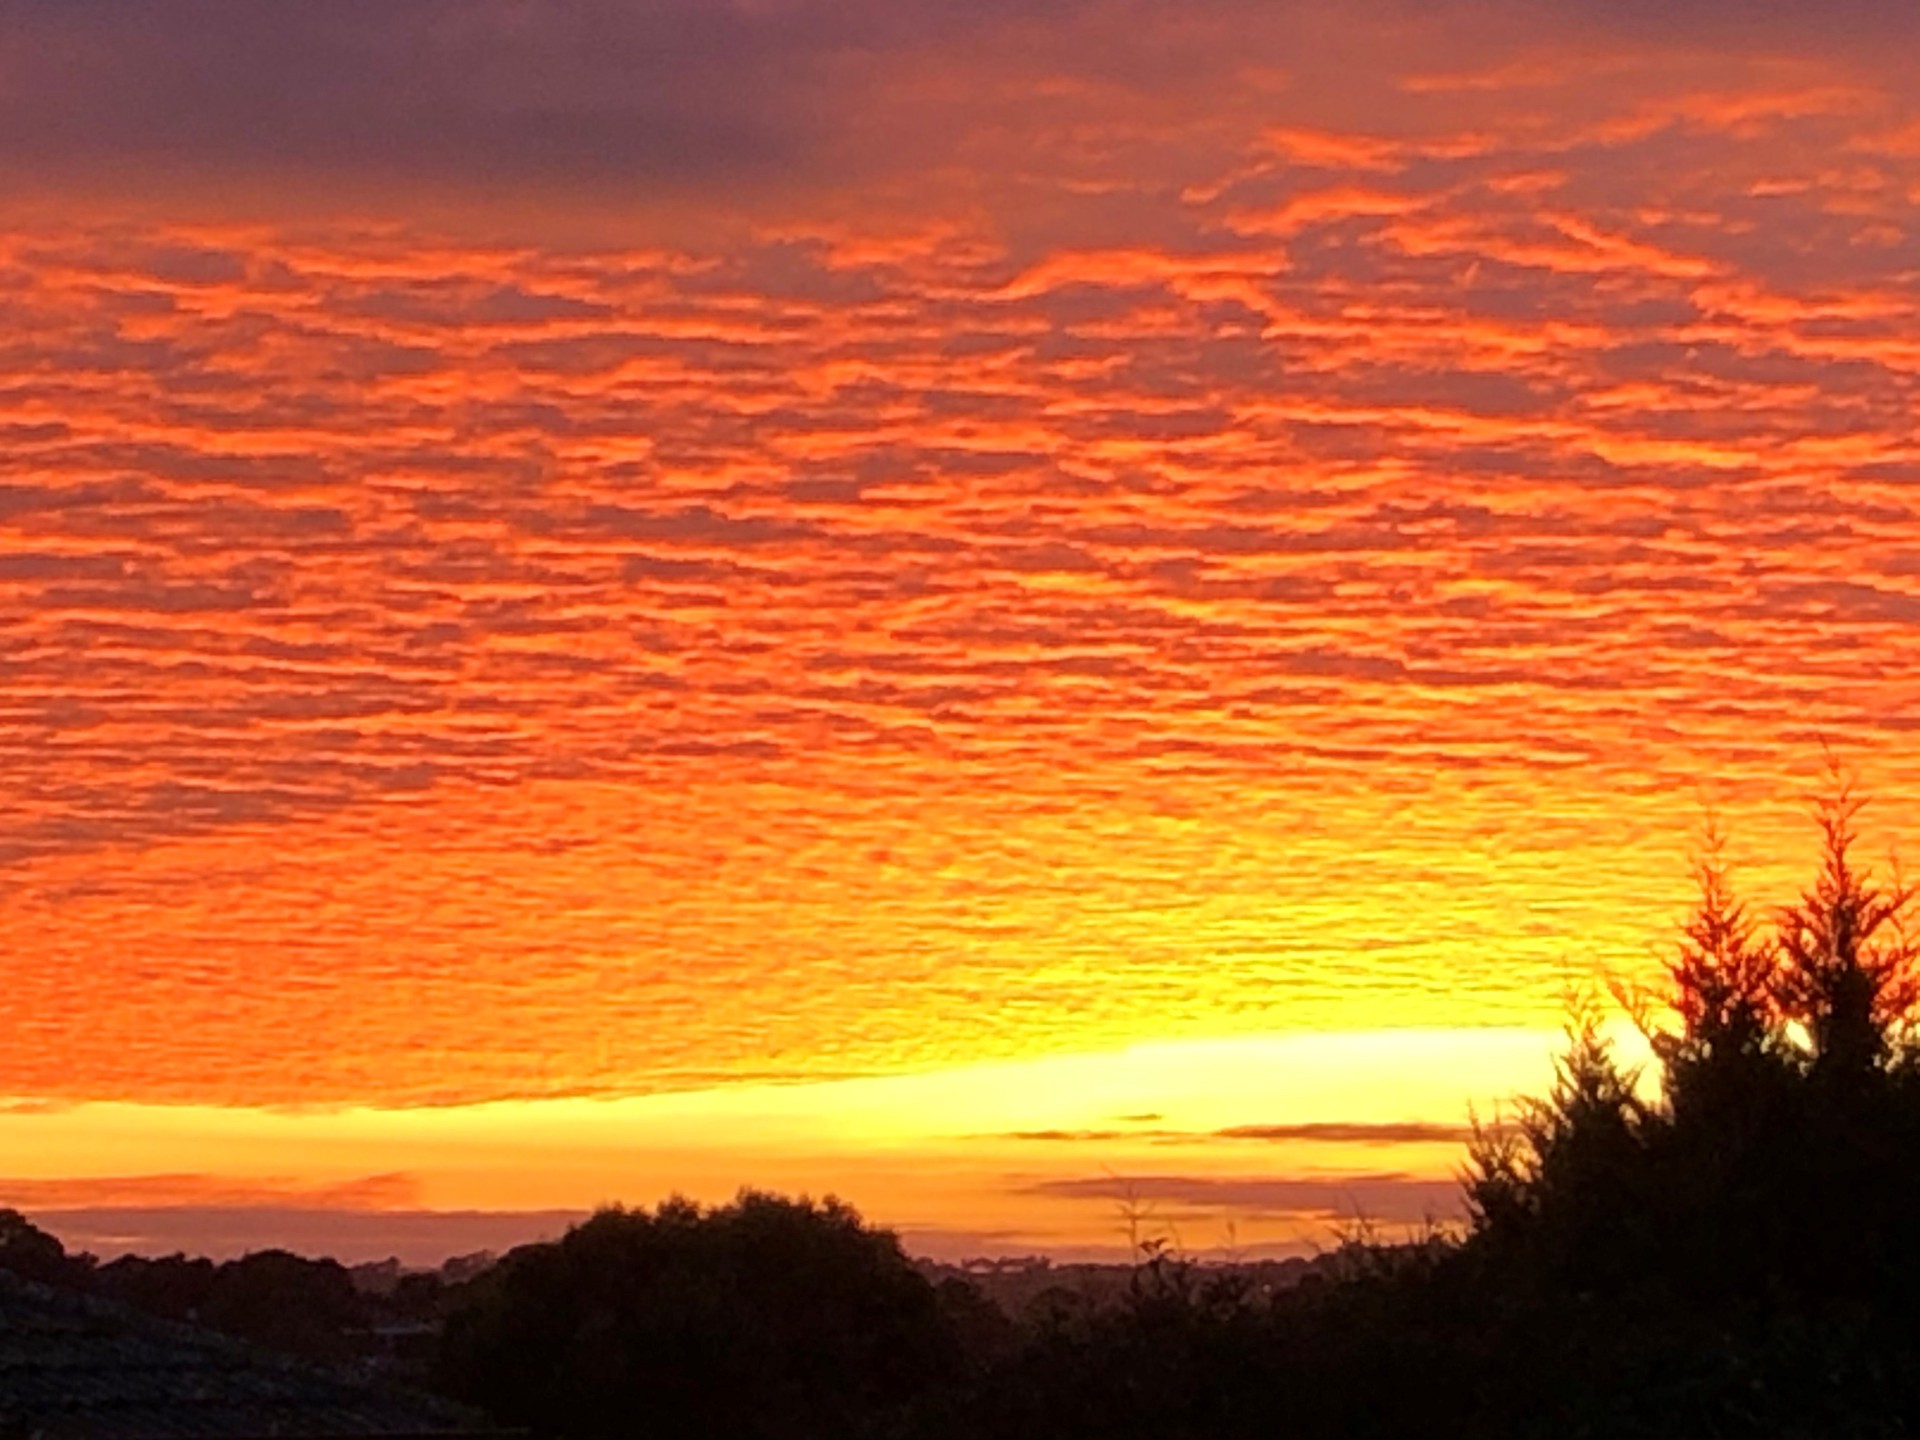 A dazzling sunrise just above the horizon sending radiant light across the dappled cloud-covered sky, the colours graduating from yellow to gold to vivid orangewith vivid orange. A silhouette of trees and shrubs are in the foreground.